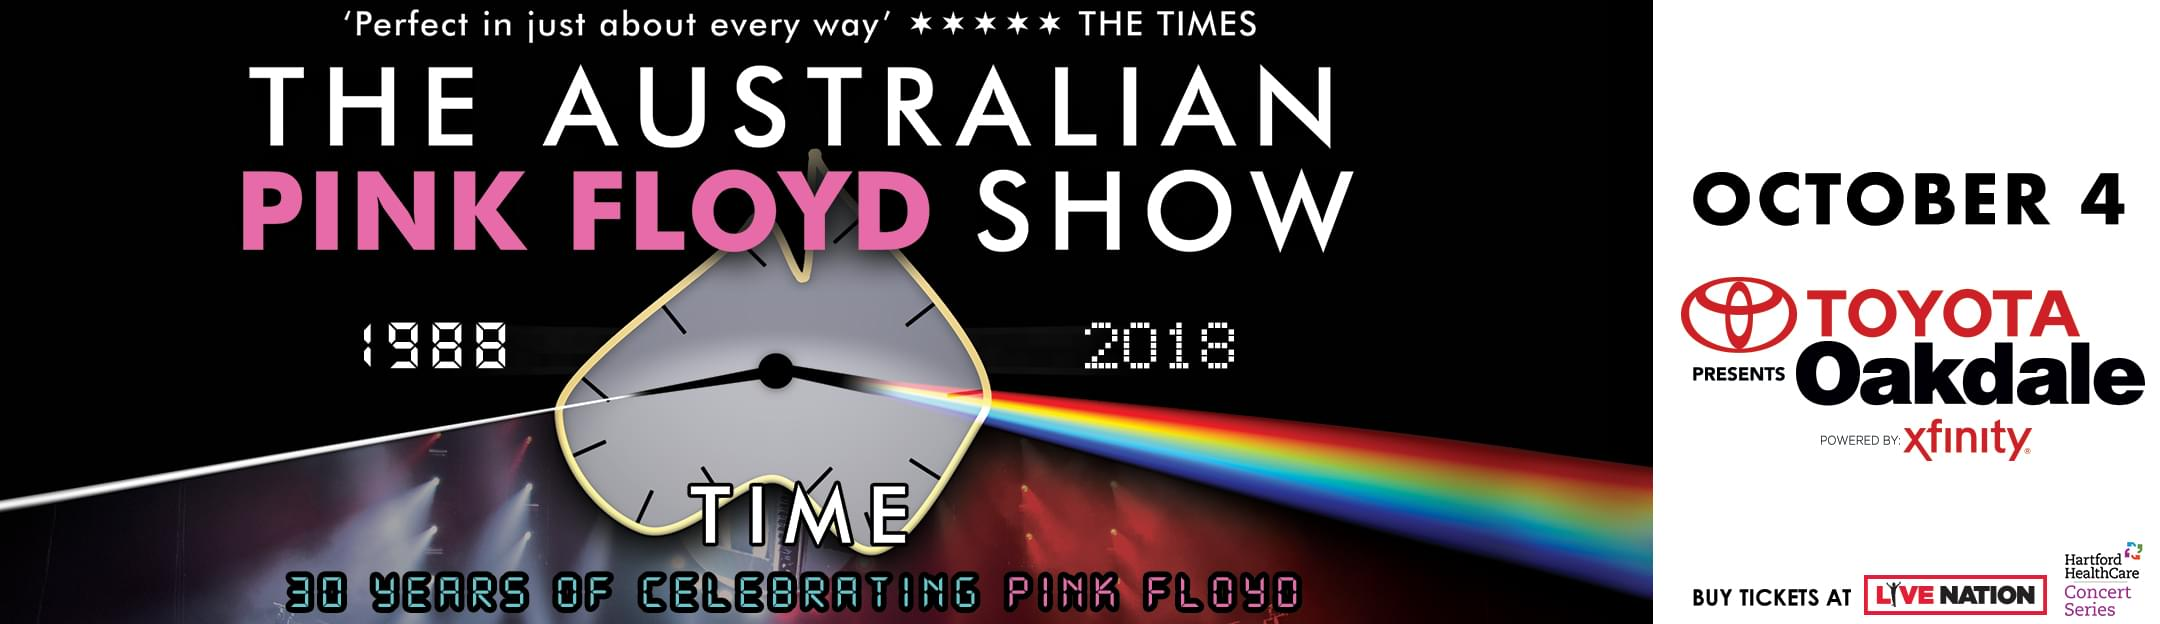 Win tickets to The Australian Pink Floyd Show